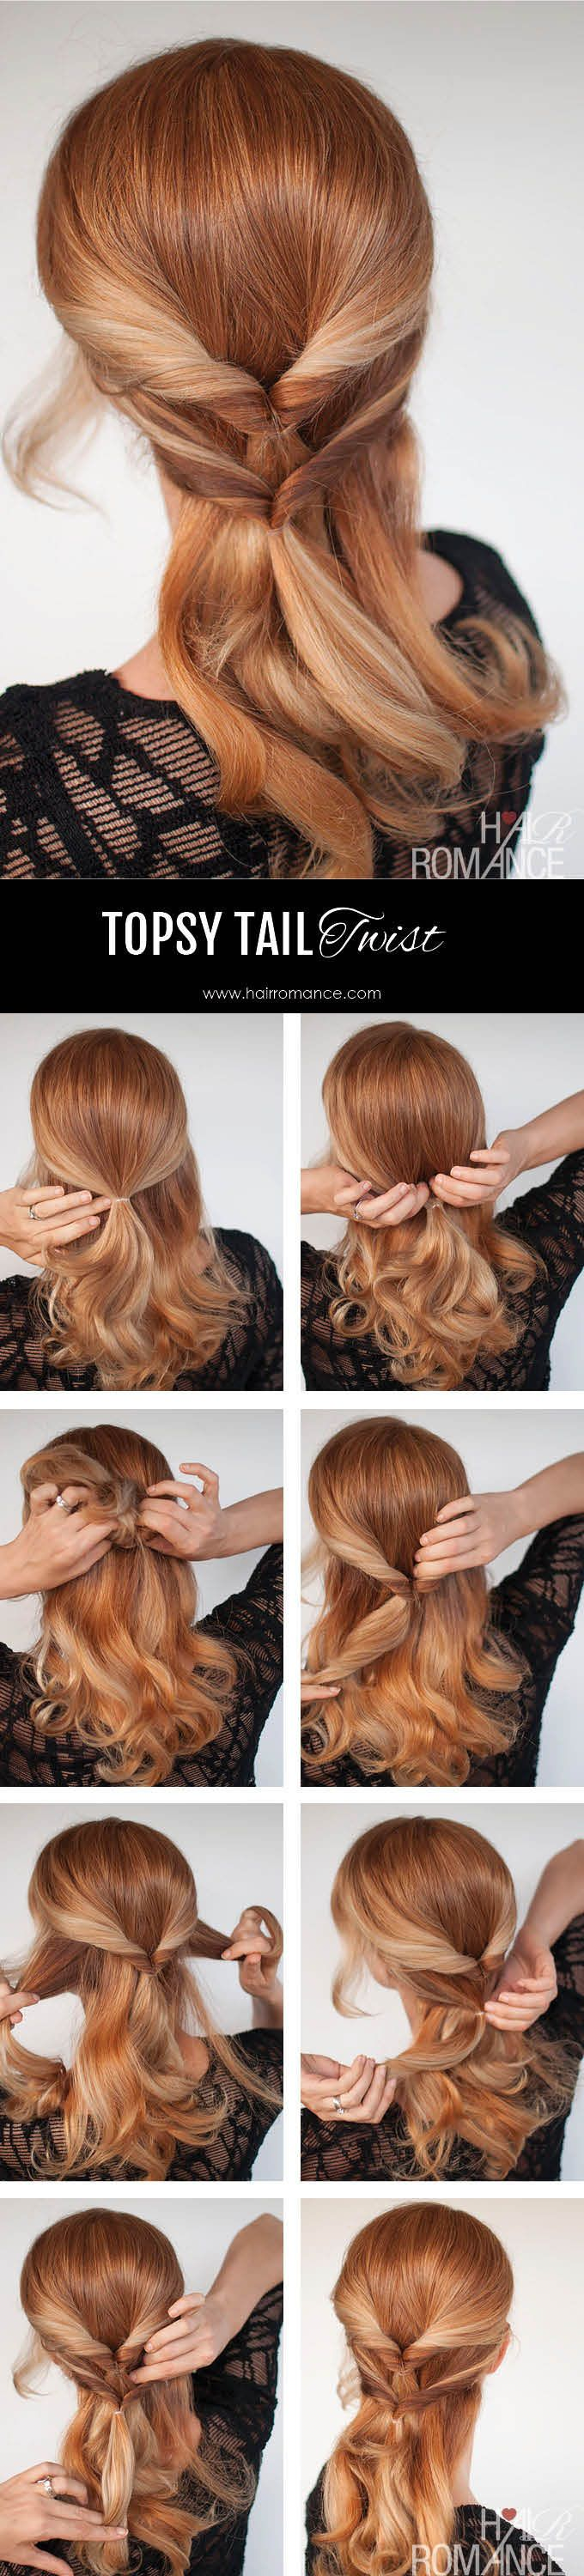 Hair-Romance-topsy-tail-twist-hairstyle-tutorial